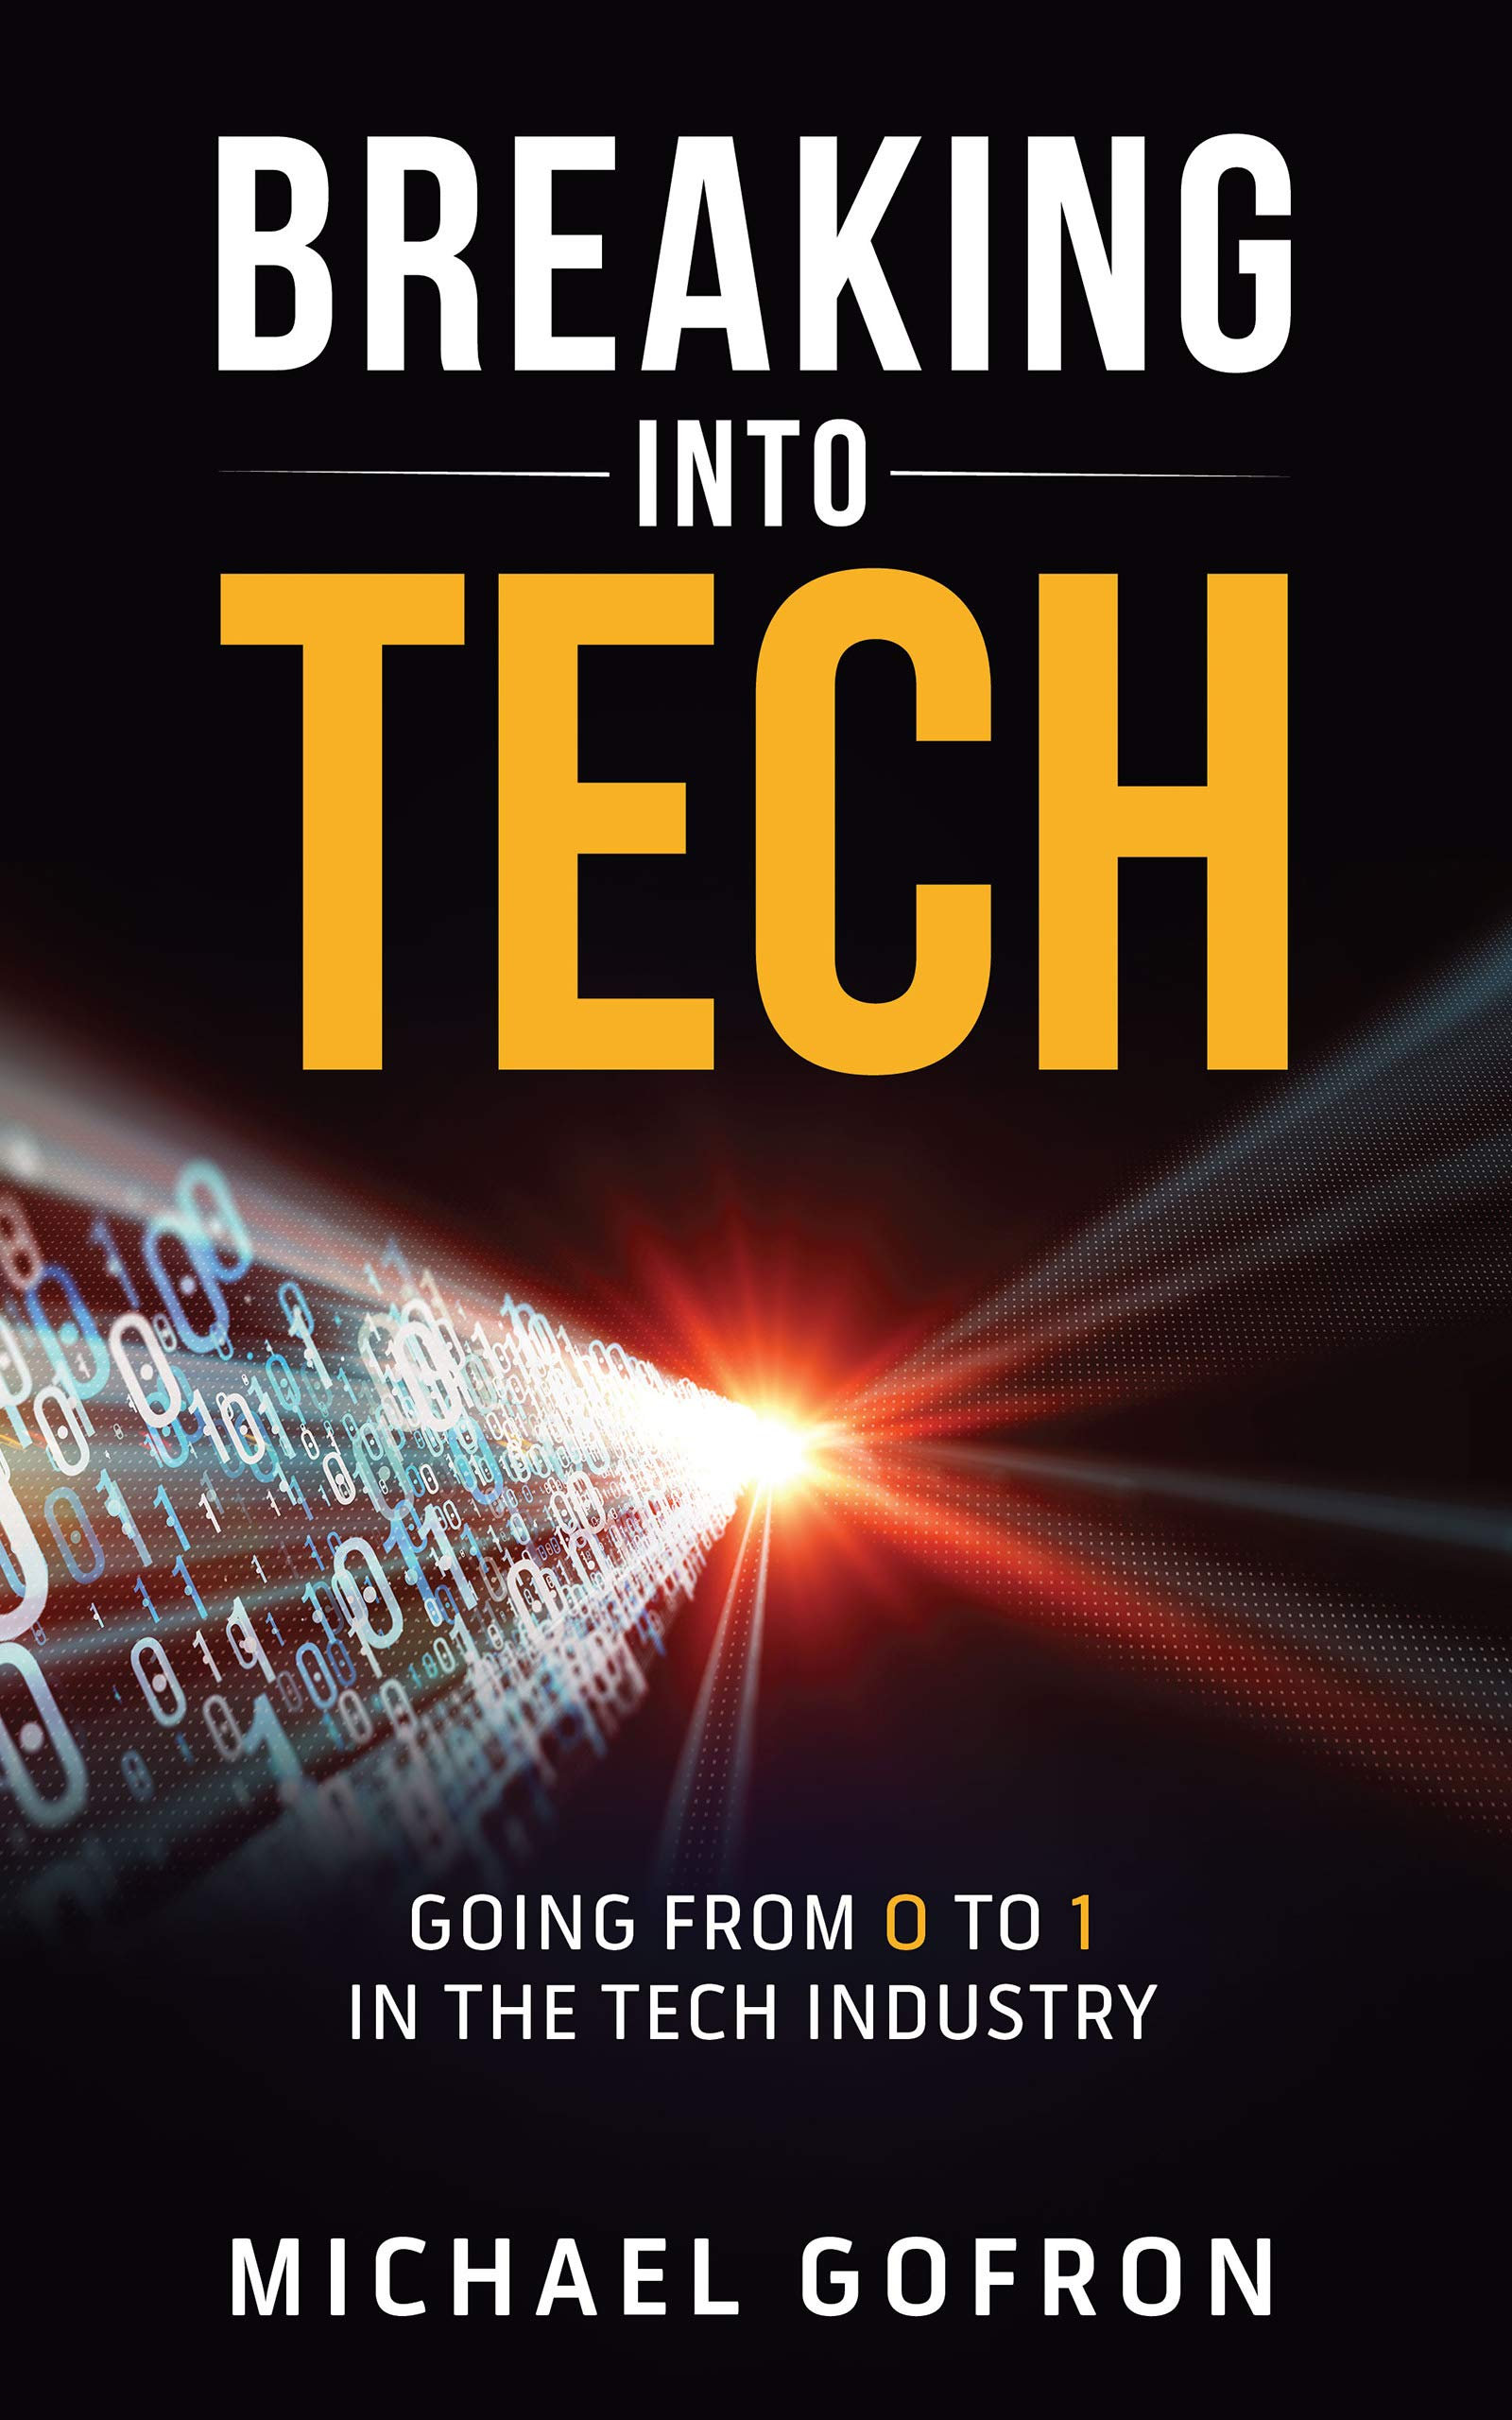 Breaking Into Tech: Going from 0 to 1 in the Tech Industry